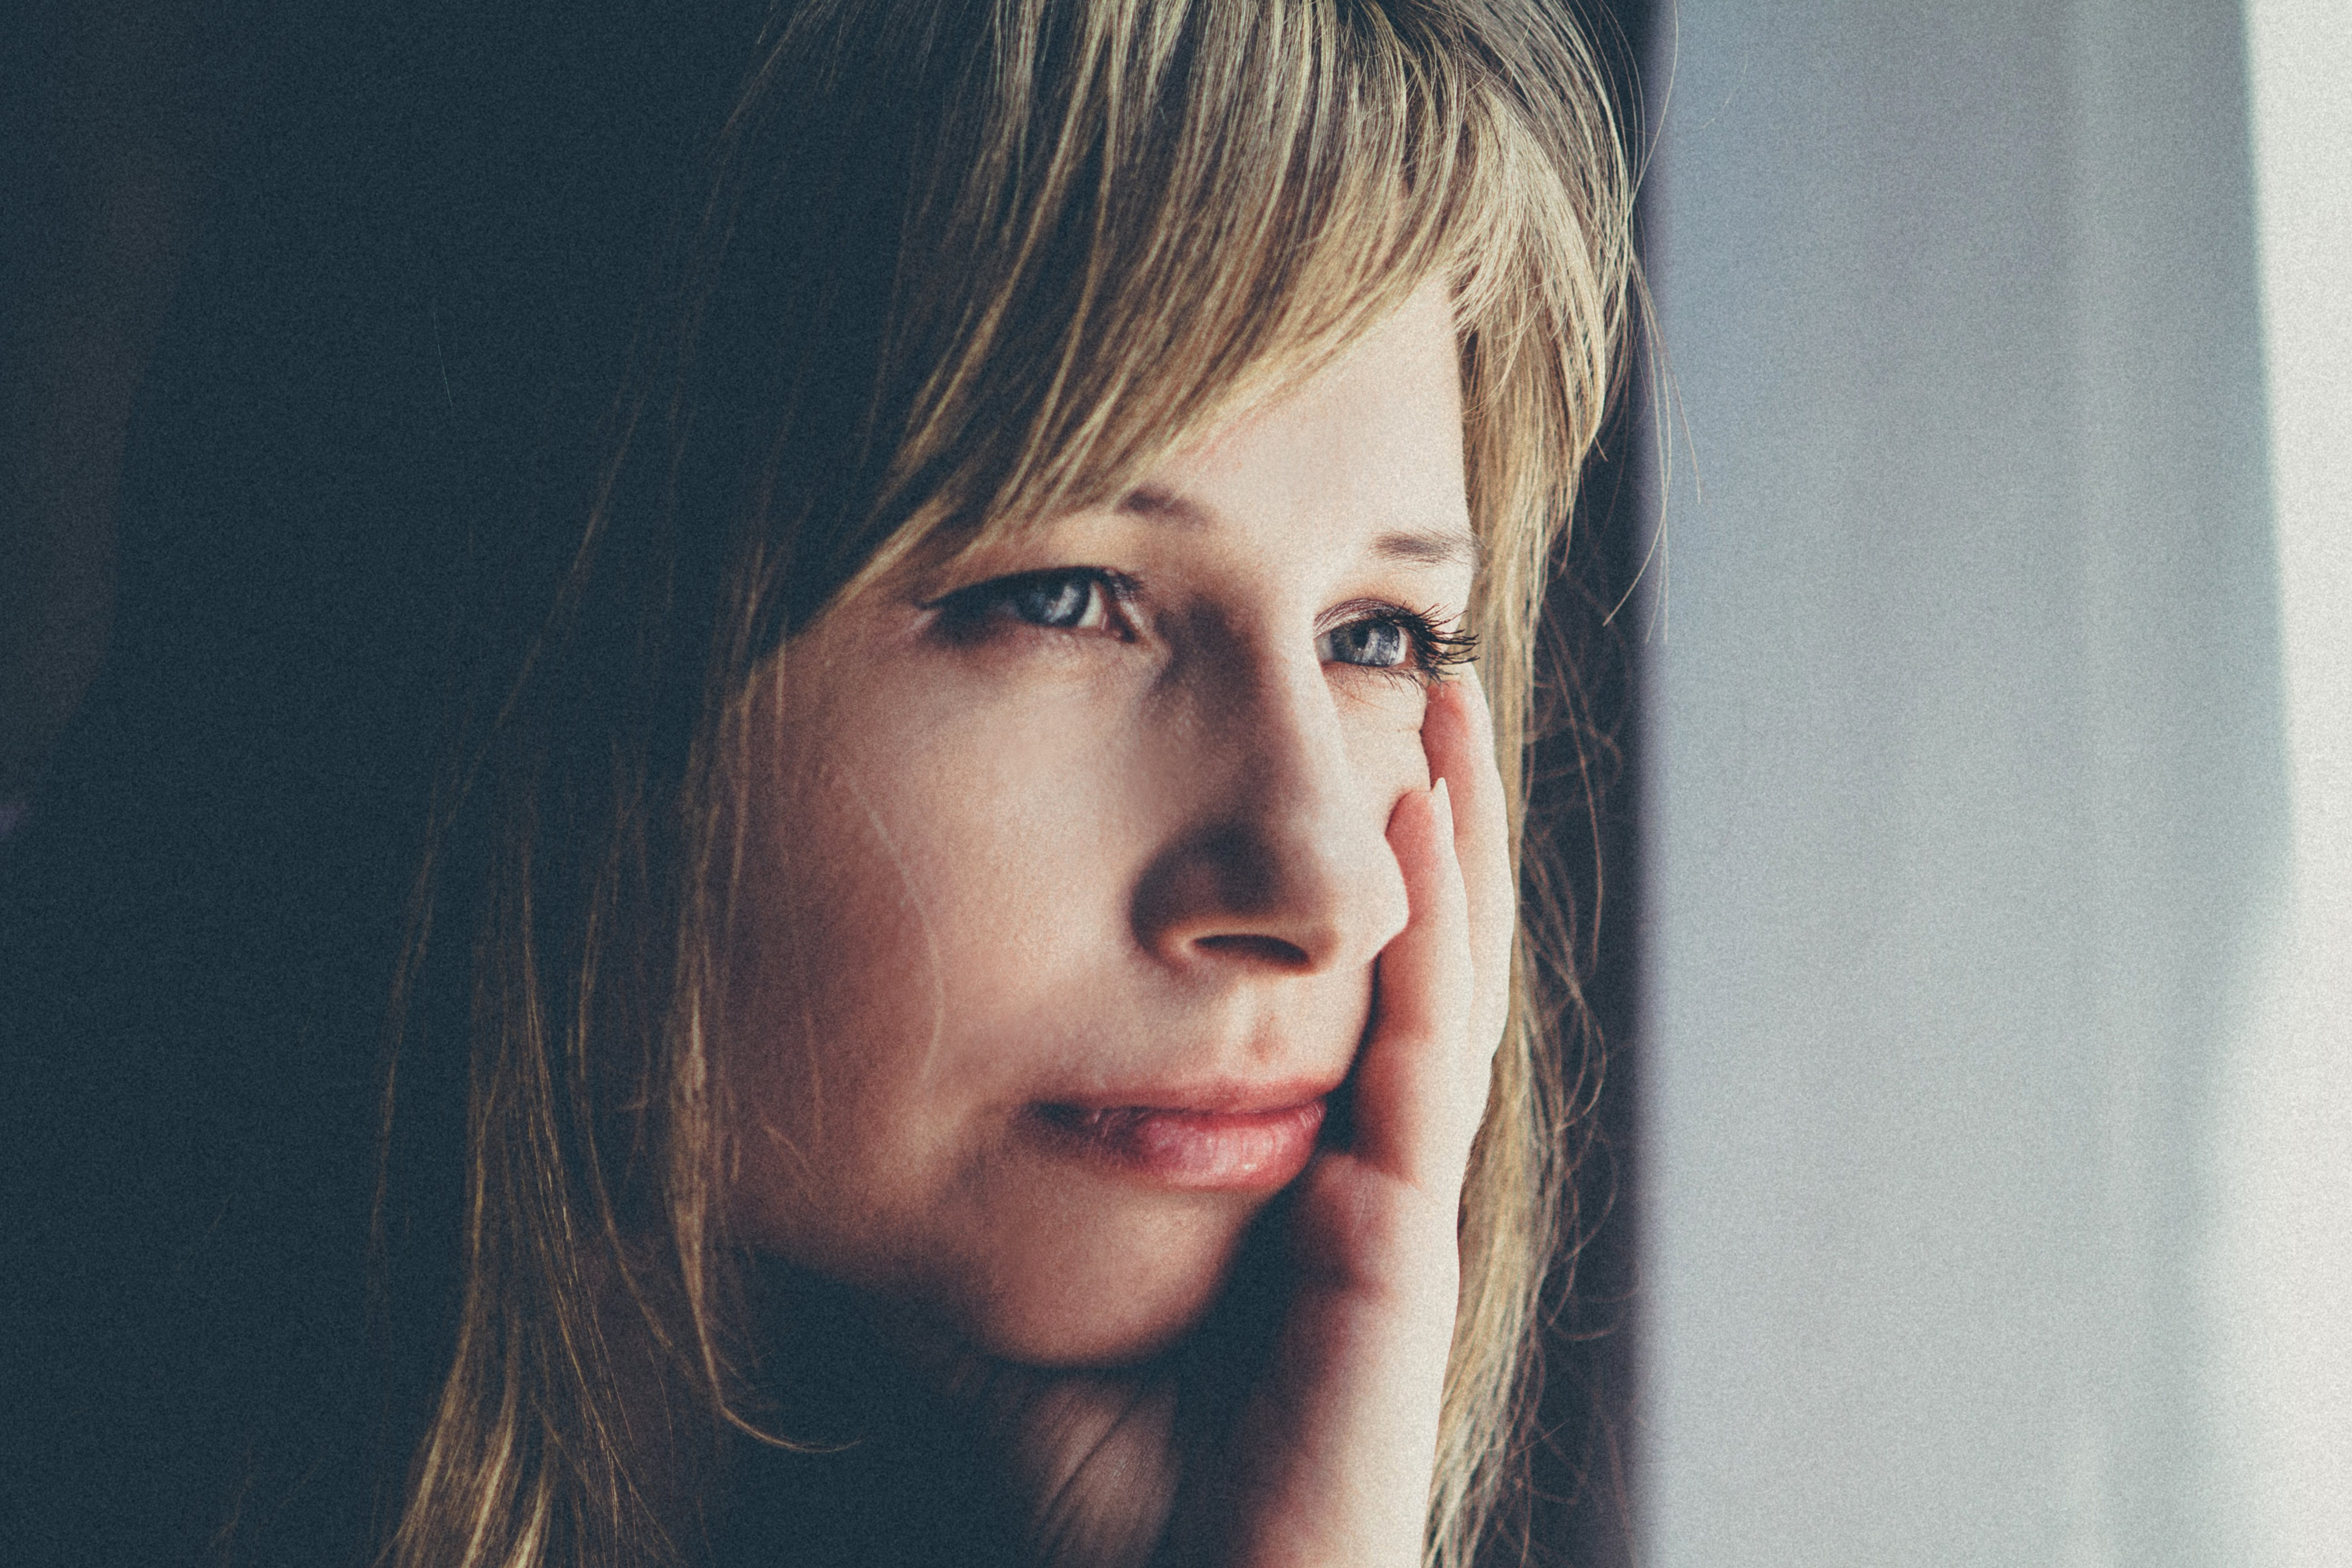 Shallow Focus Photography Of Woman Touching Her Left Cheek